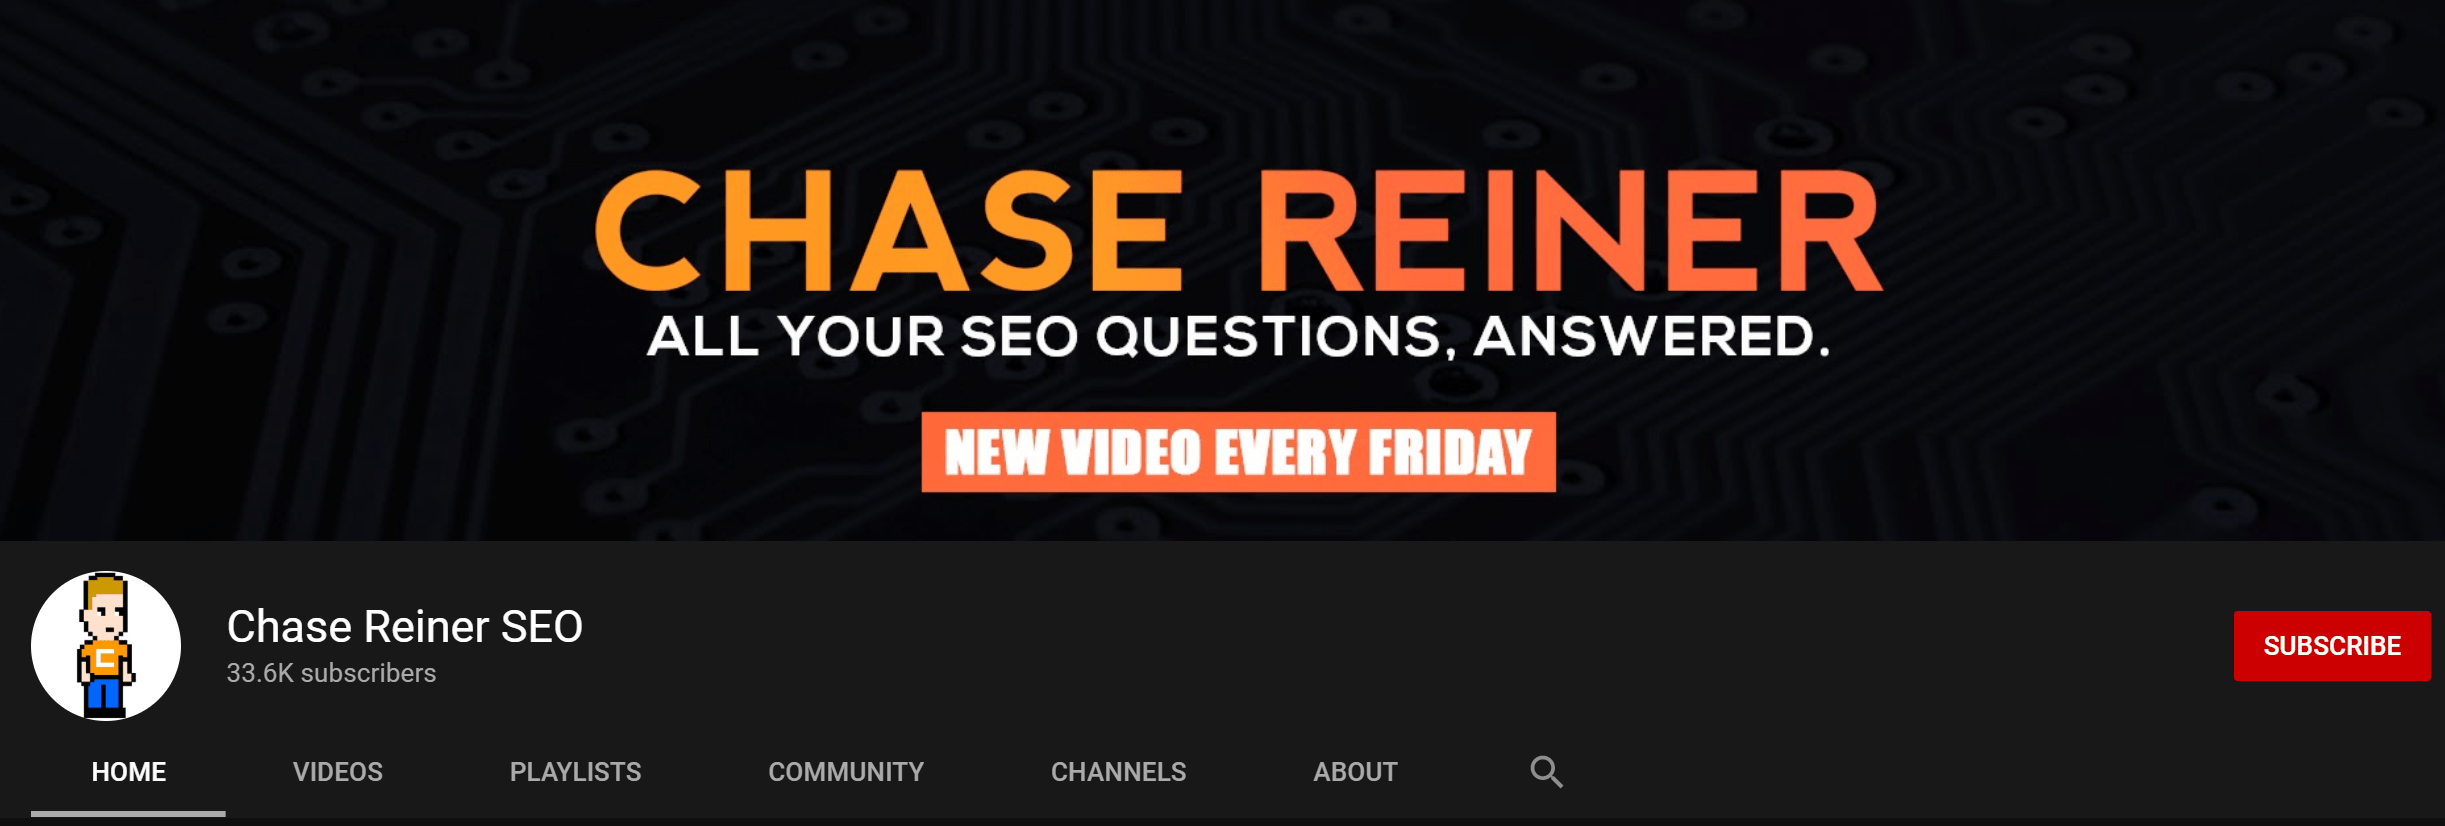 Chase Reiner SEO Youtube Channel